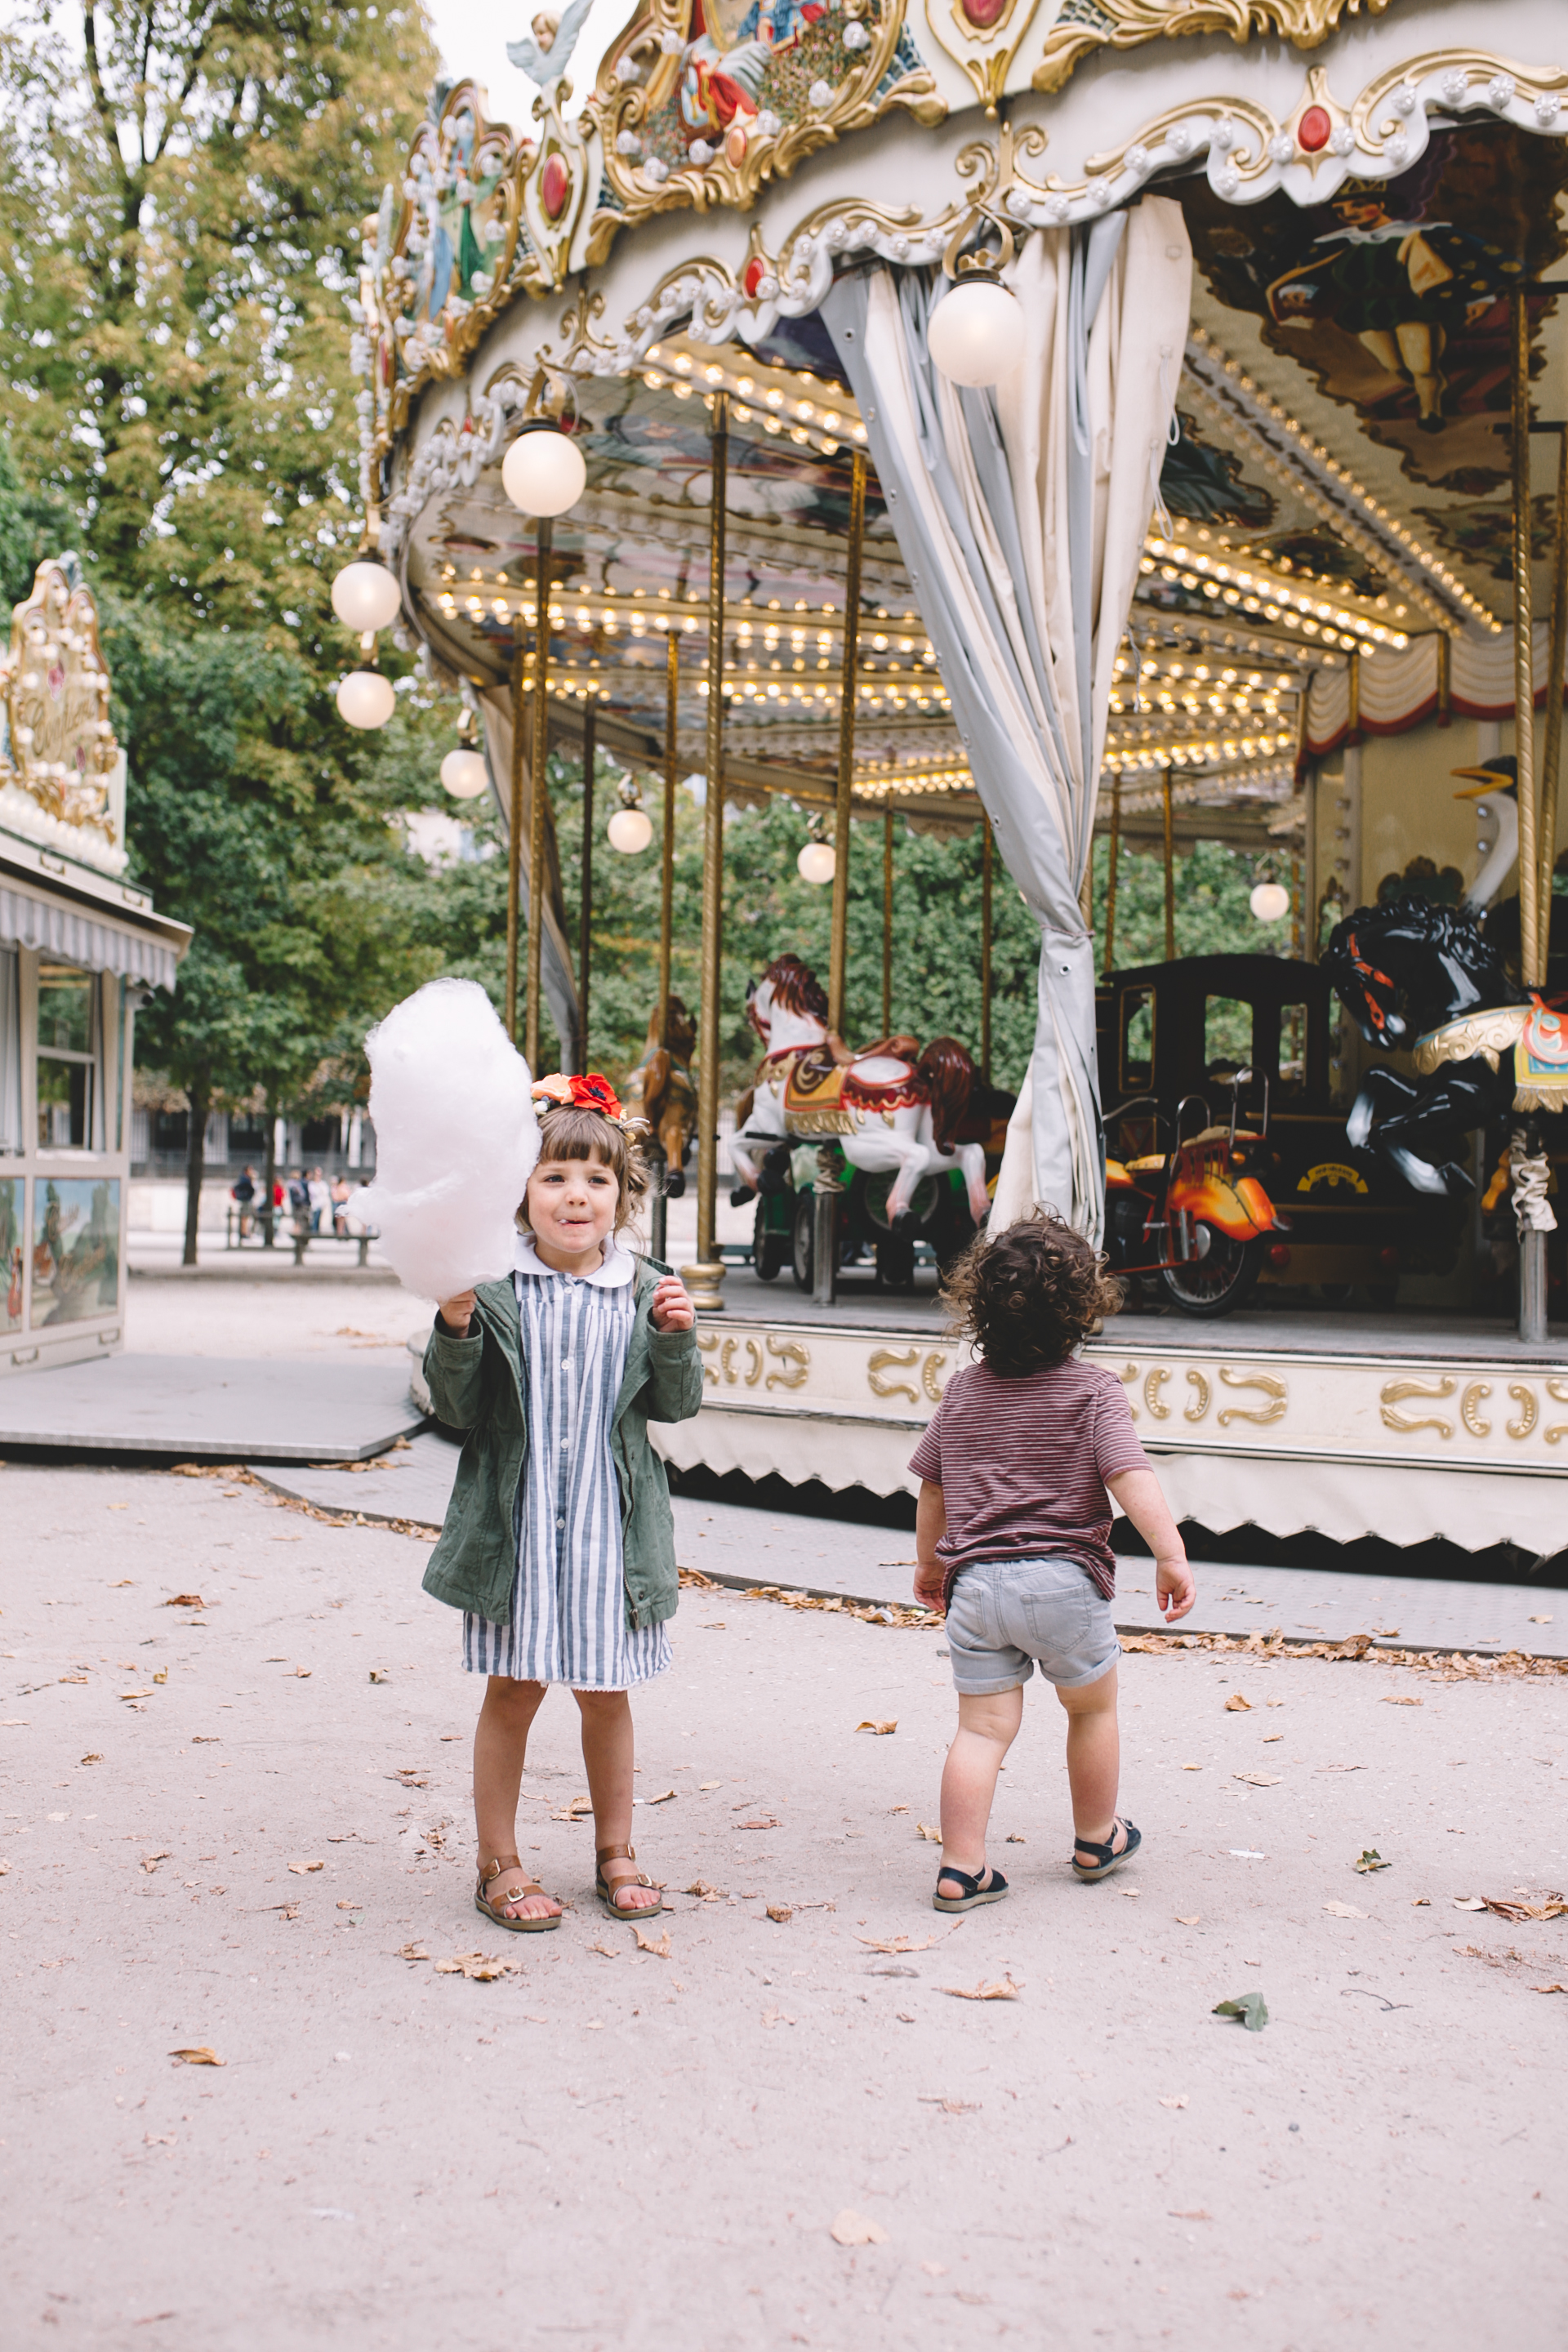 Jardin des Tuileries Paris France Carousel  (4 of 7).jpg